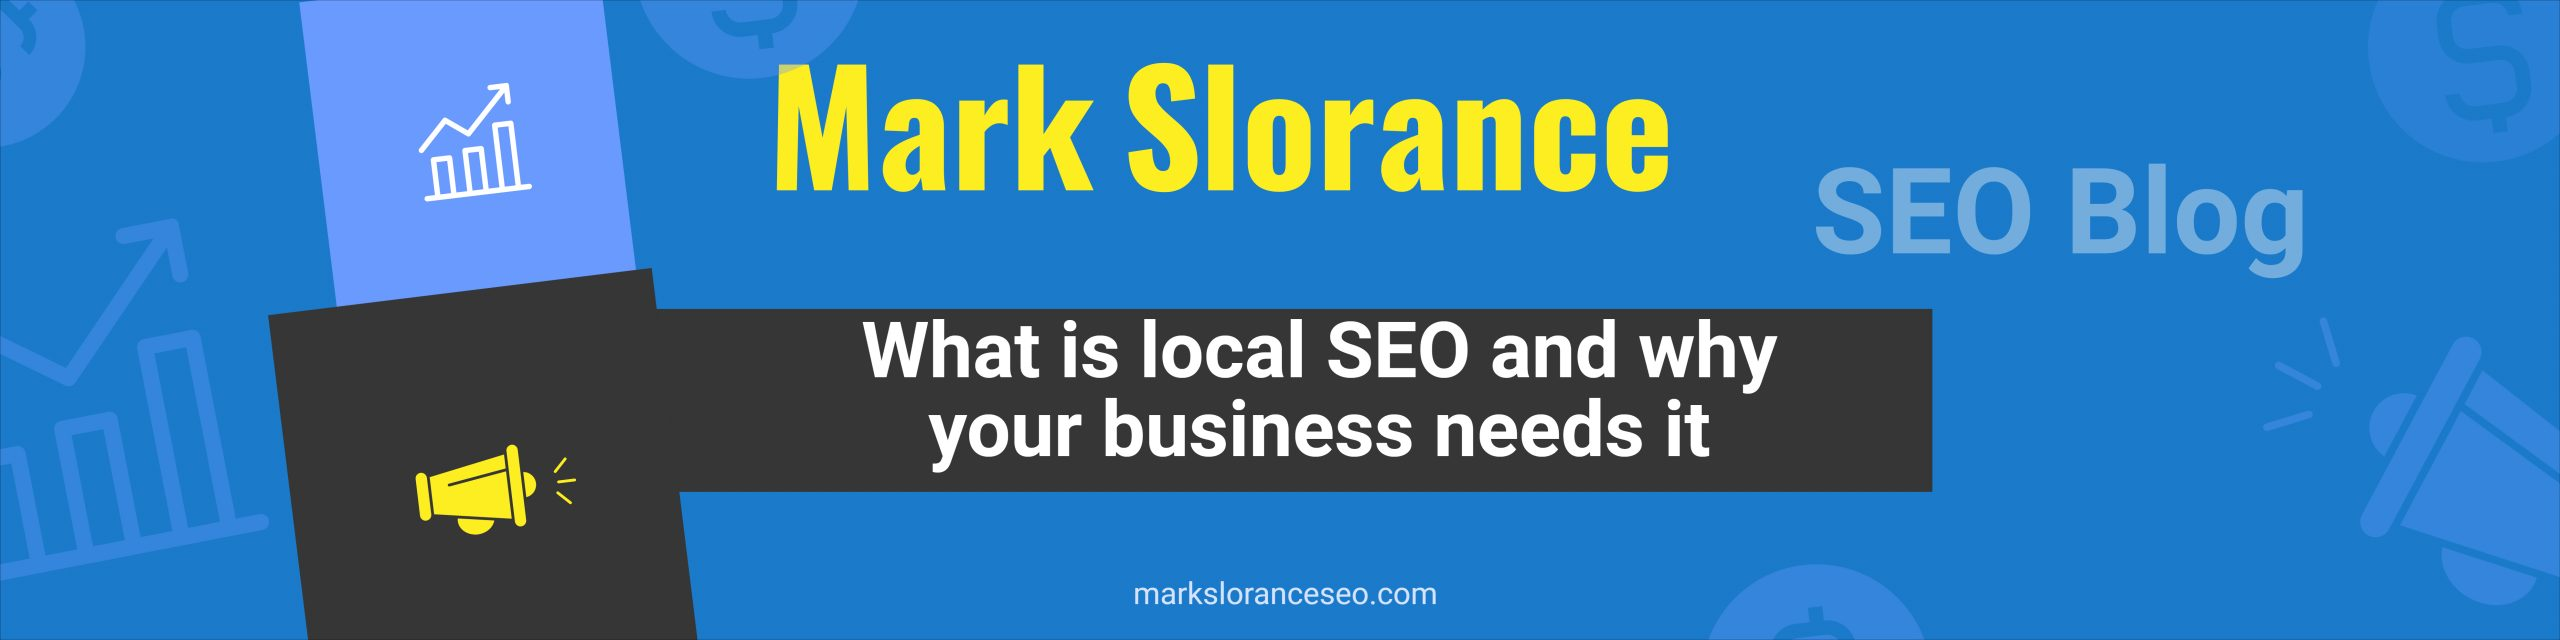 What is local SEO and why your business needs it?